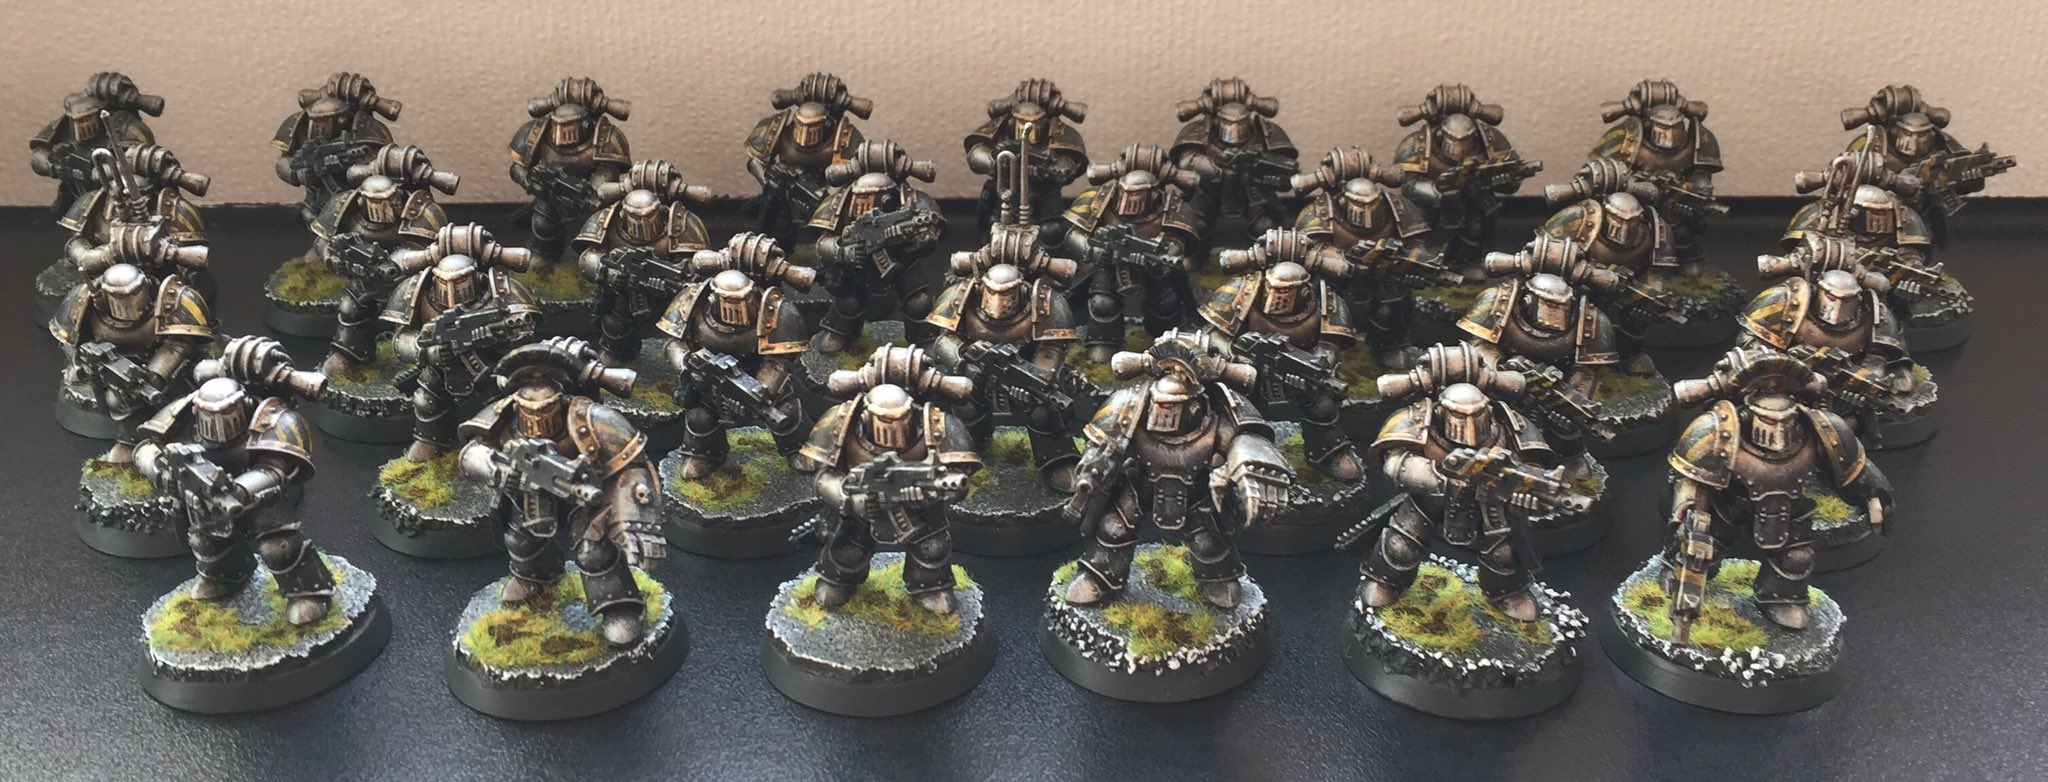 Iron Warriors Tactical Marines in mark III 'Iron' armour